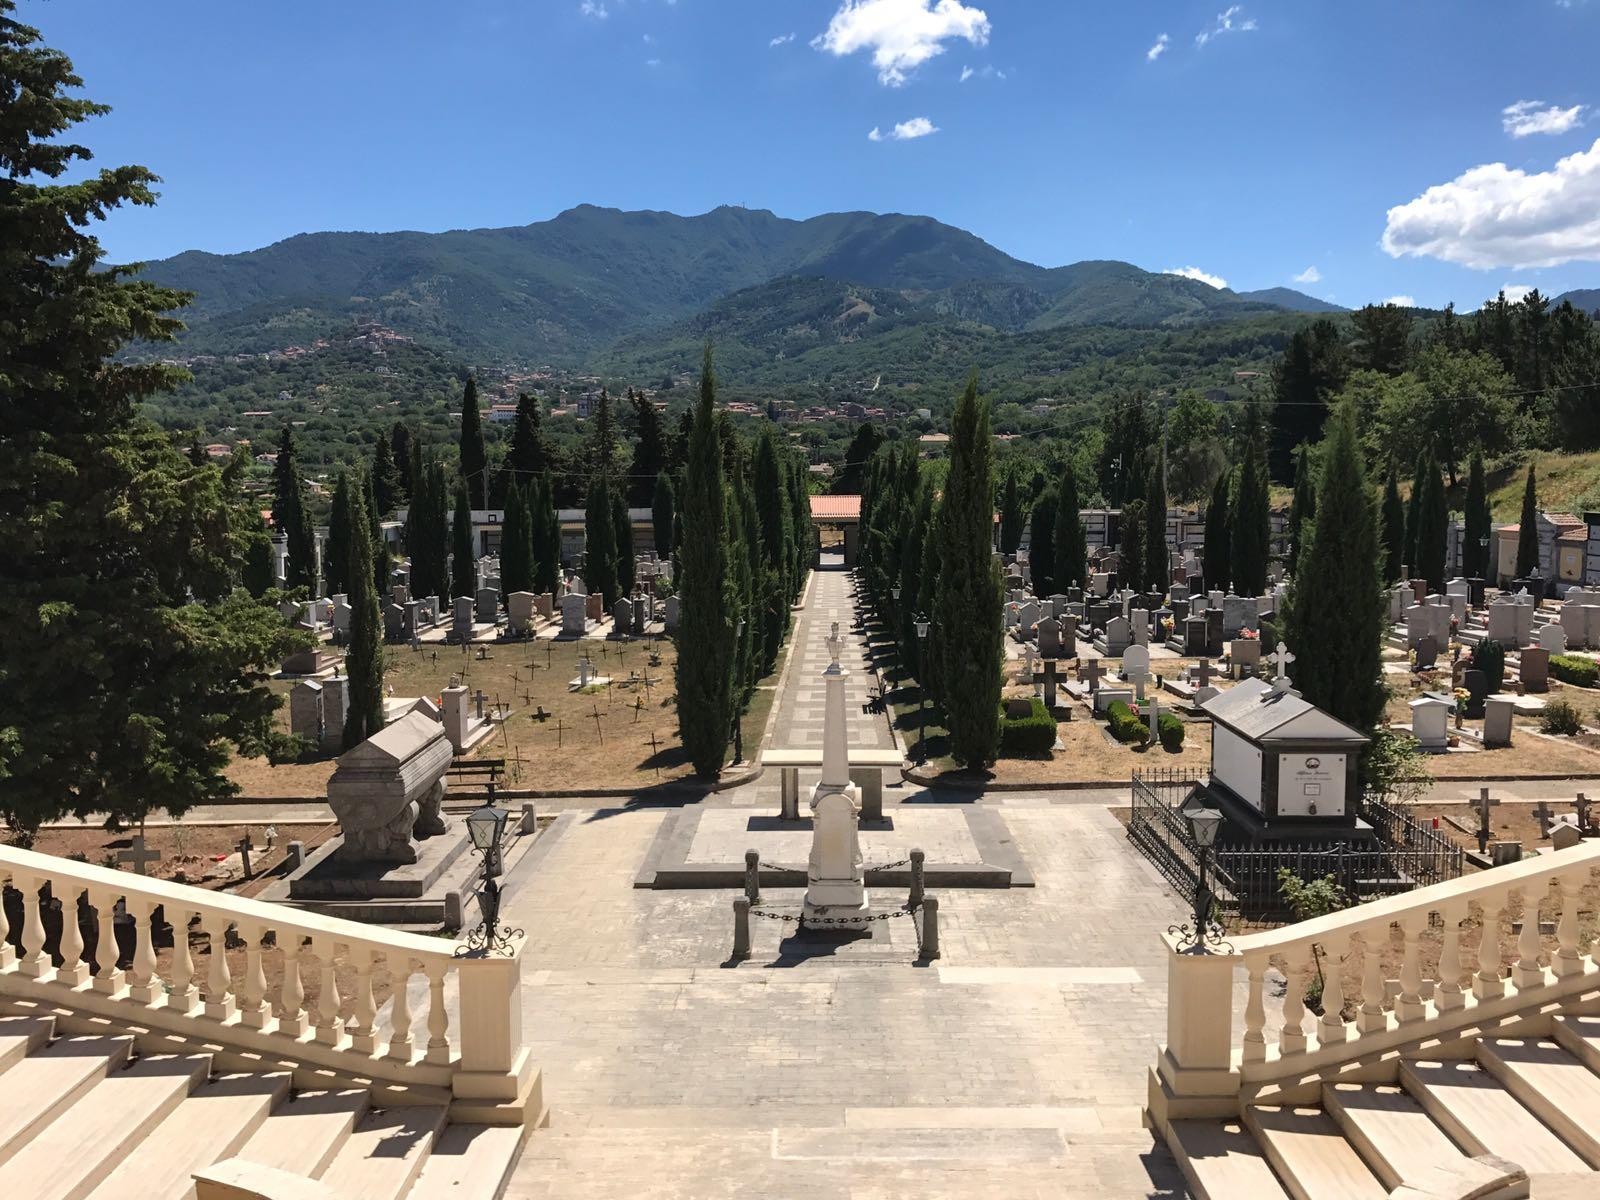 Photo of Vallo della Lucania, ok all'ampliamento del cimitero